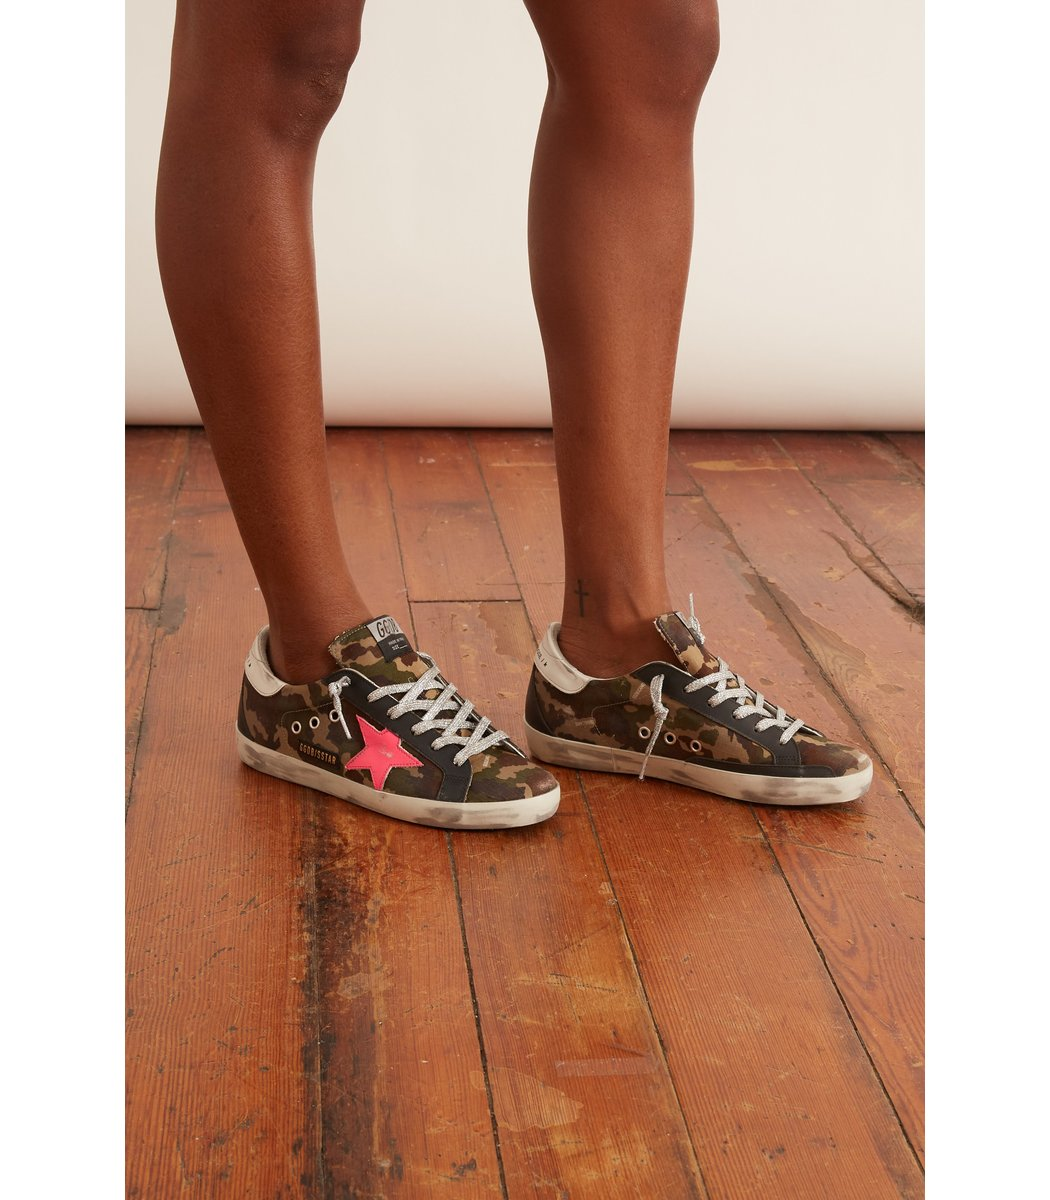 GOLDEN GOOSE Leathers Superstar Sneaker in Green Camo/Fuxia Fluo/White/Black